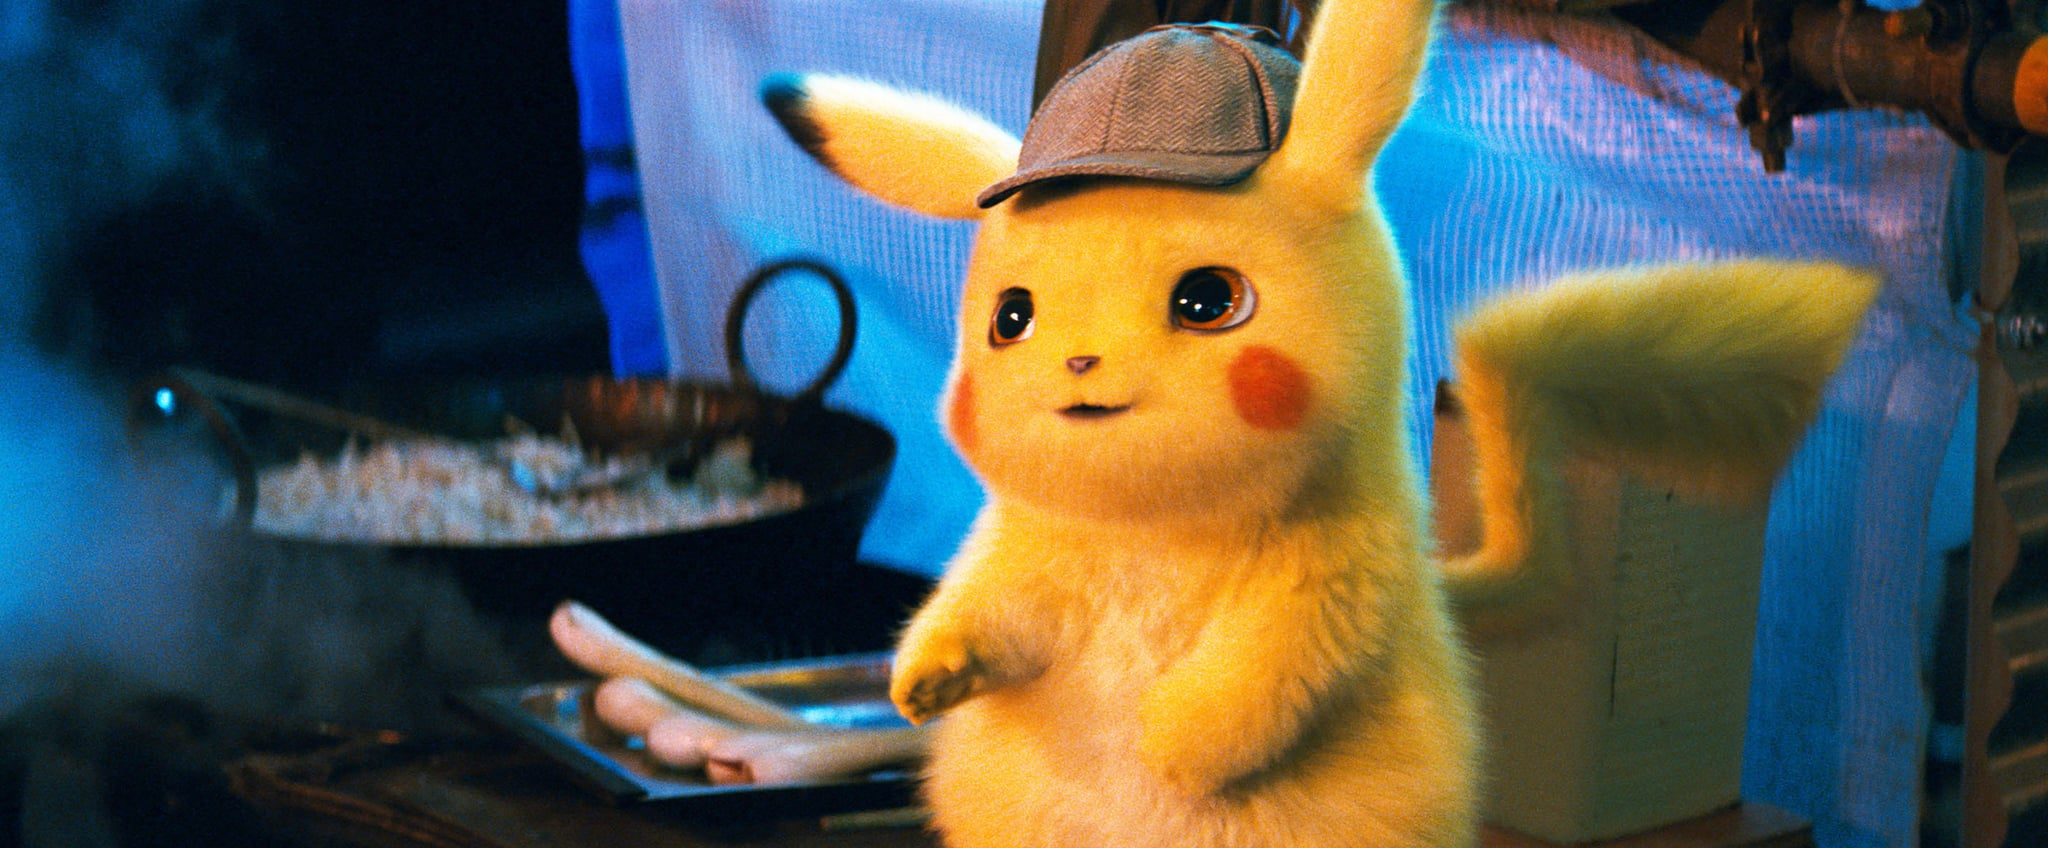 POKEMON DETECTIVE PIKACHU, Detective Pikachu (voice: Ryan Reynolds), 2019.  Warner Bros. / courtesy Everett Collection